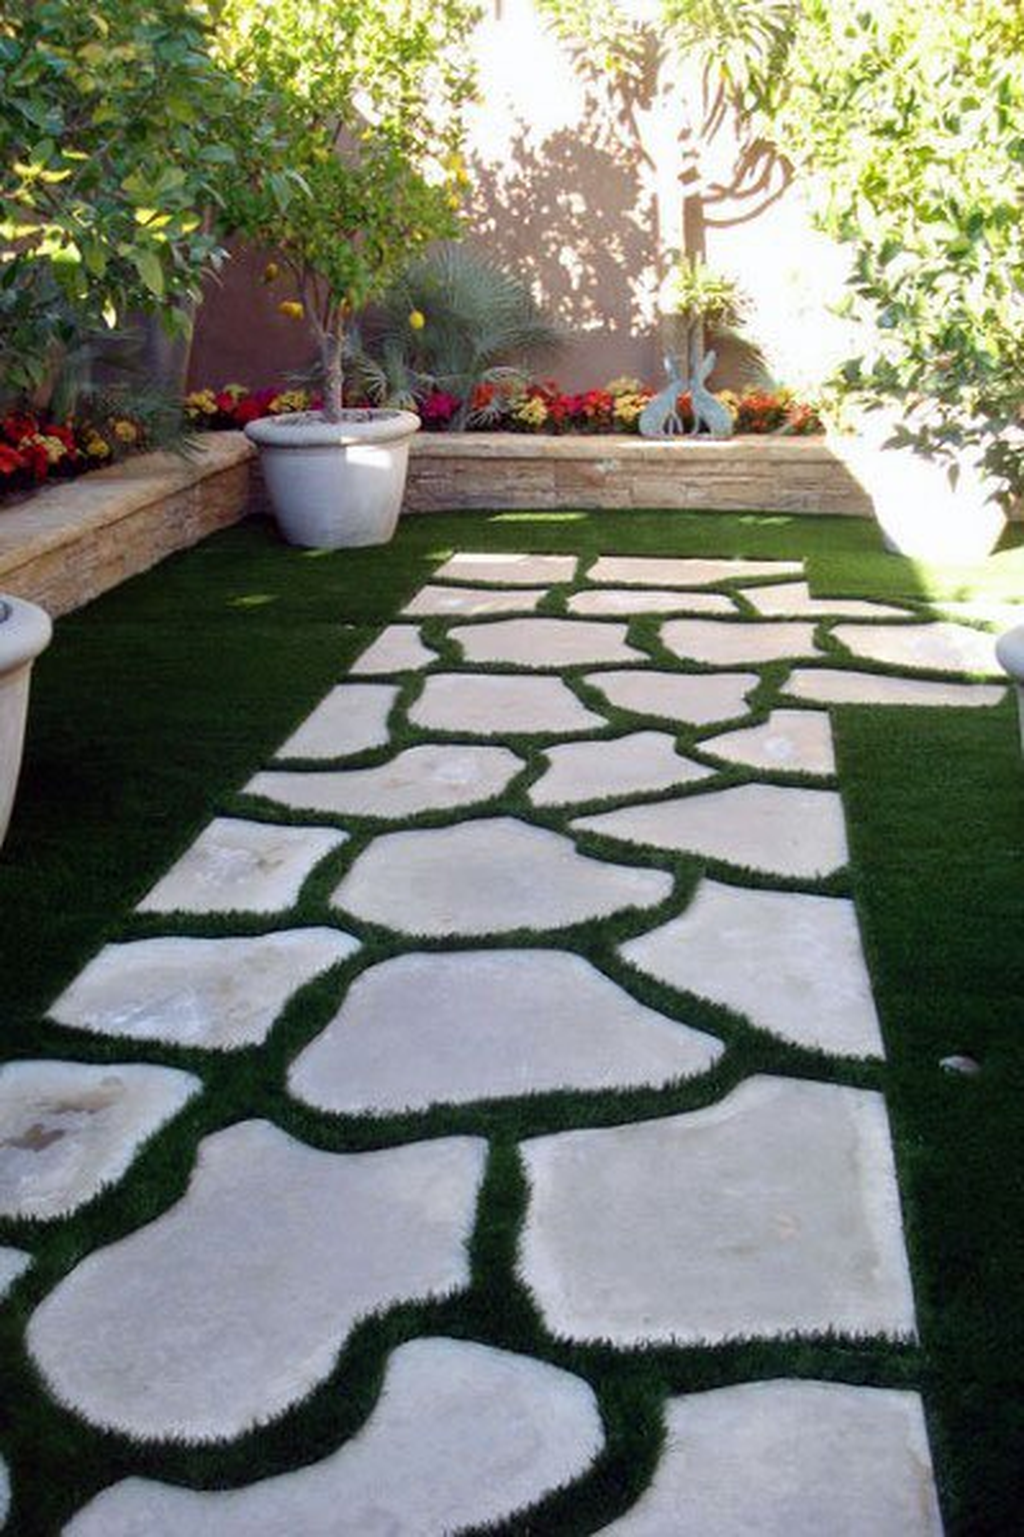 Stunning Stepping Stones Pathway Design Ideas 10